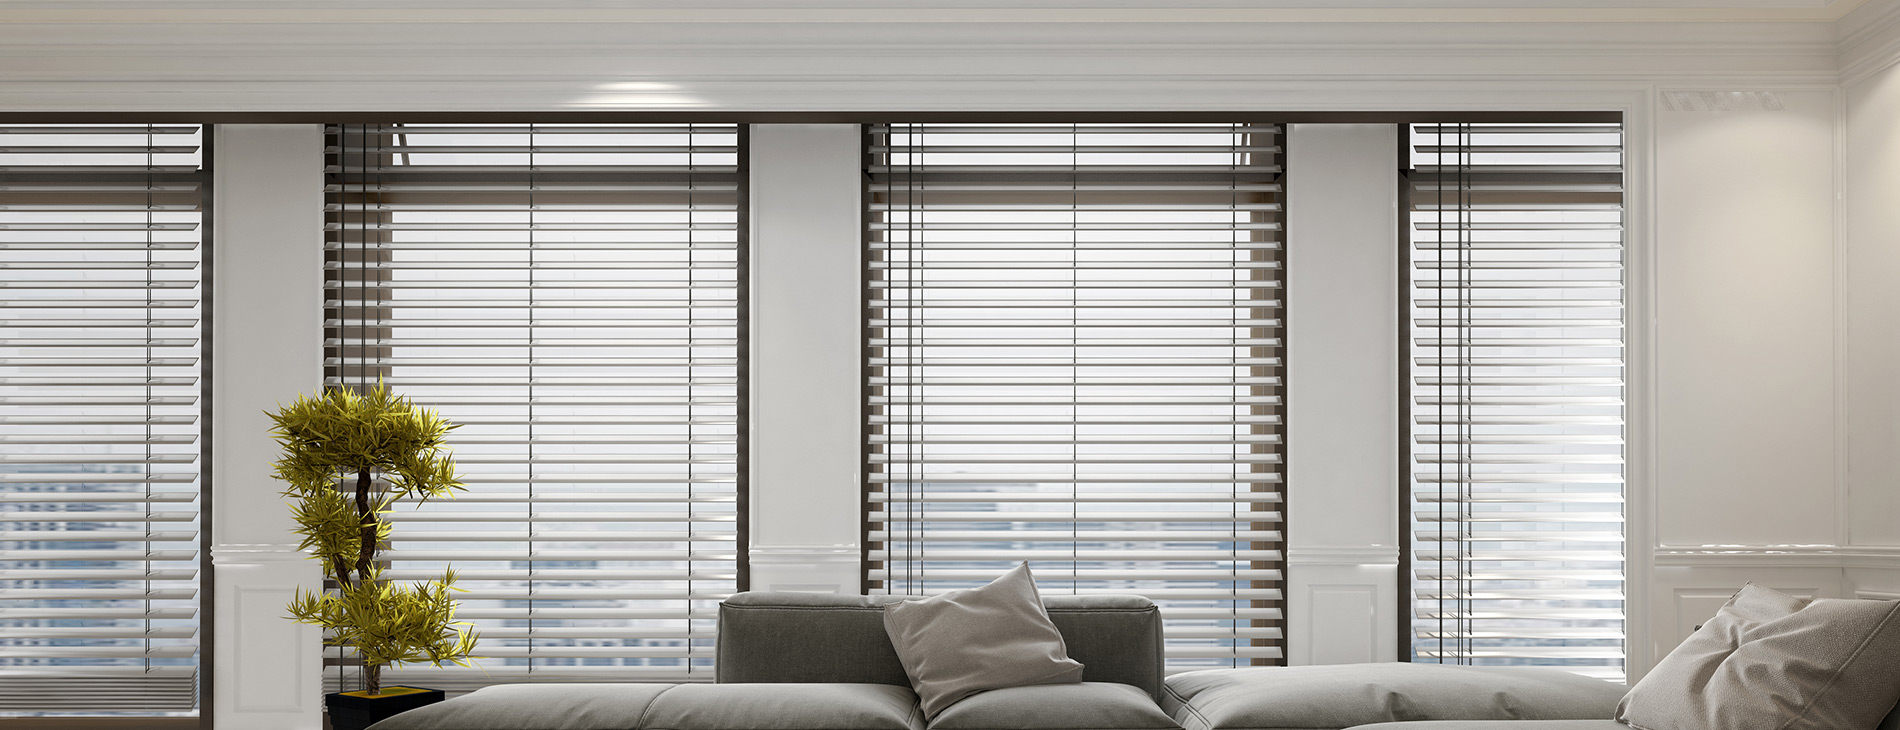 bonus sale promotions blinds in graberblinds products best with calgary wood on graber shades